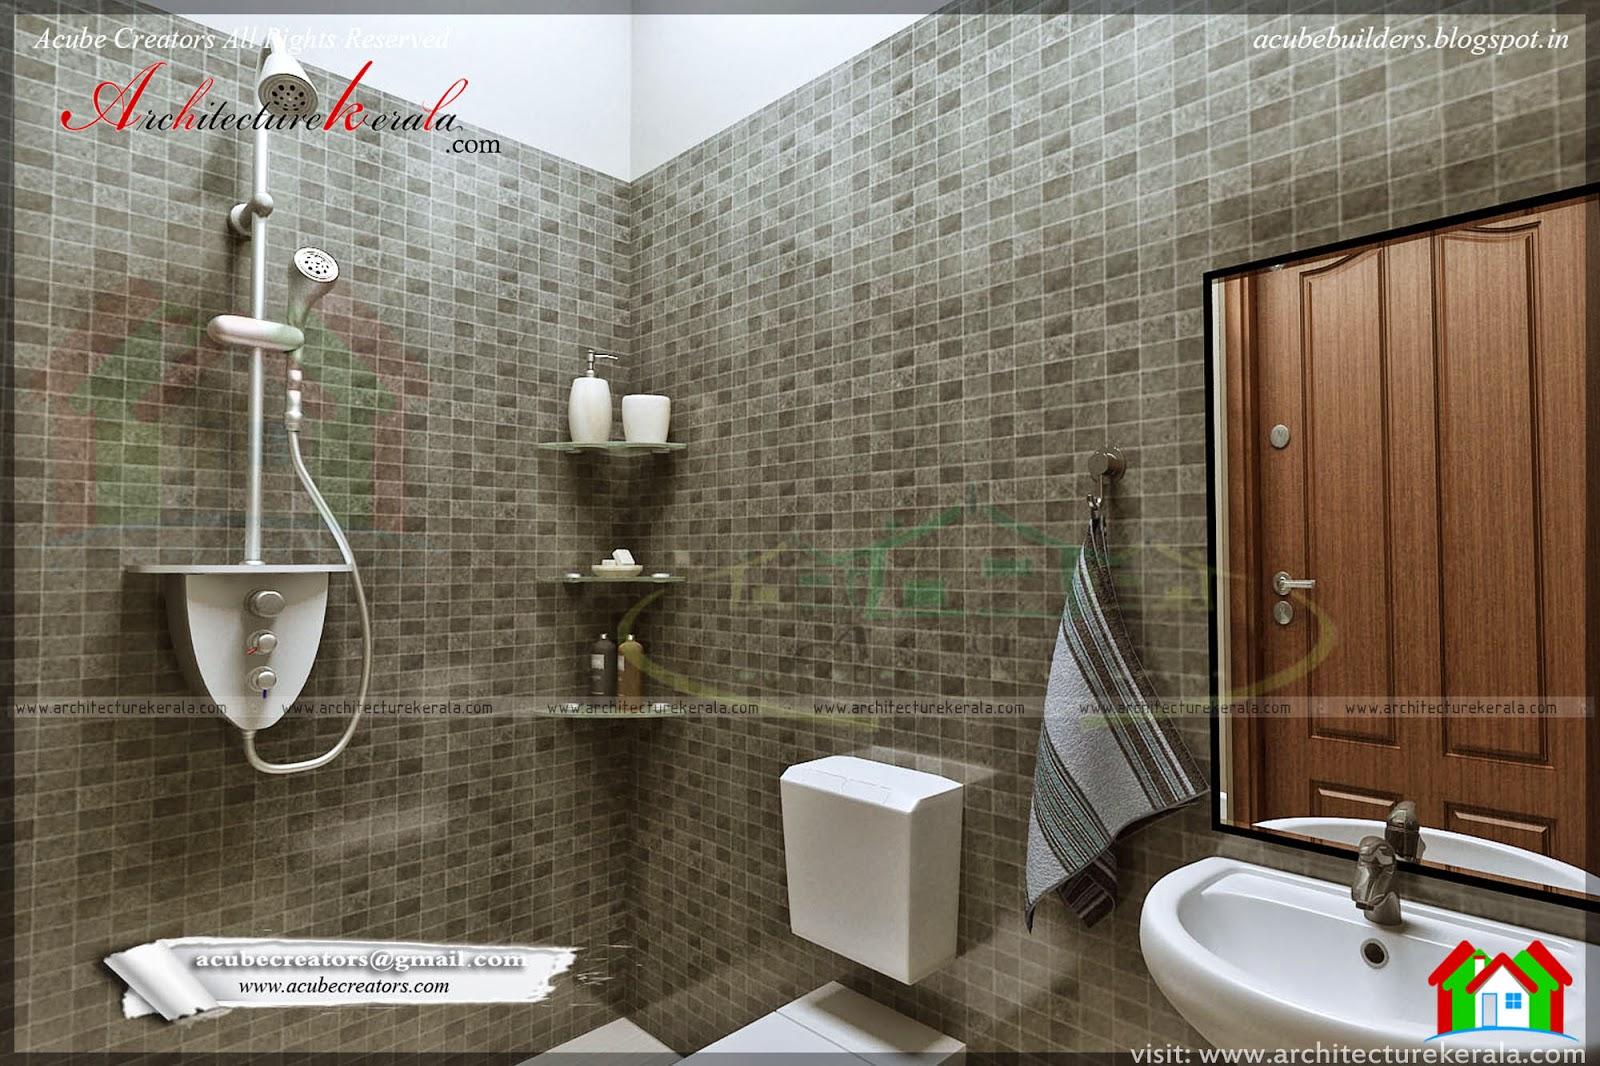 architecture kerala bathroom - Bathroom Designs In Kerala